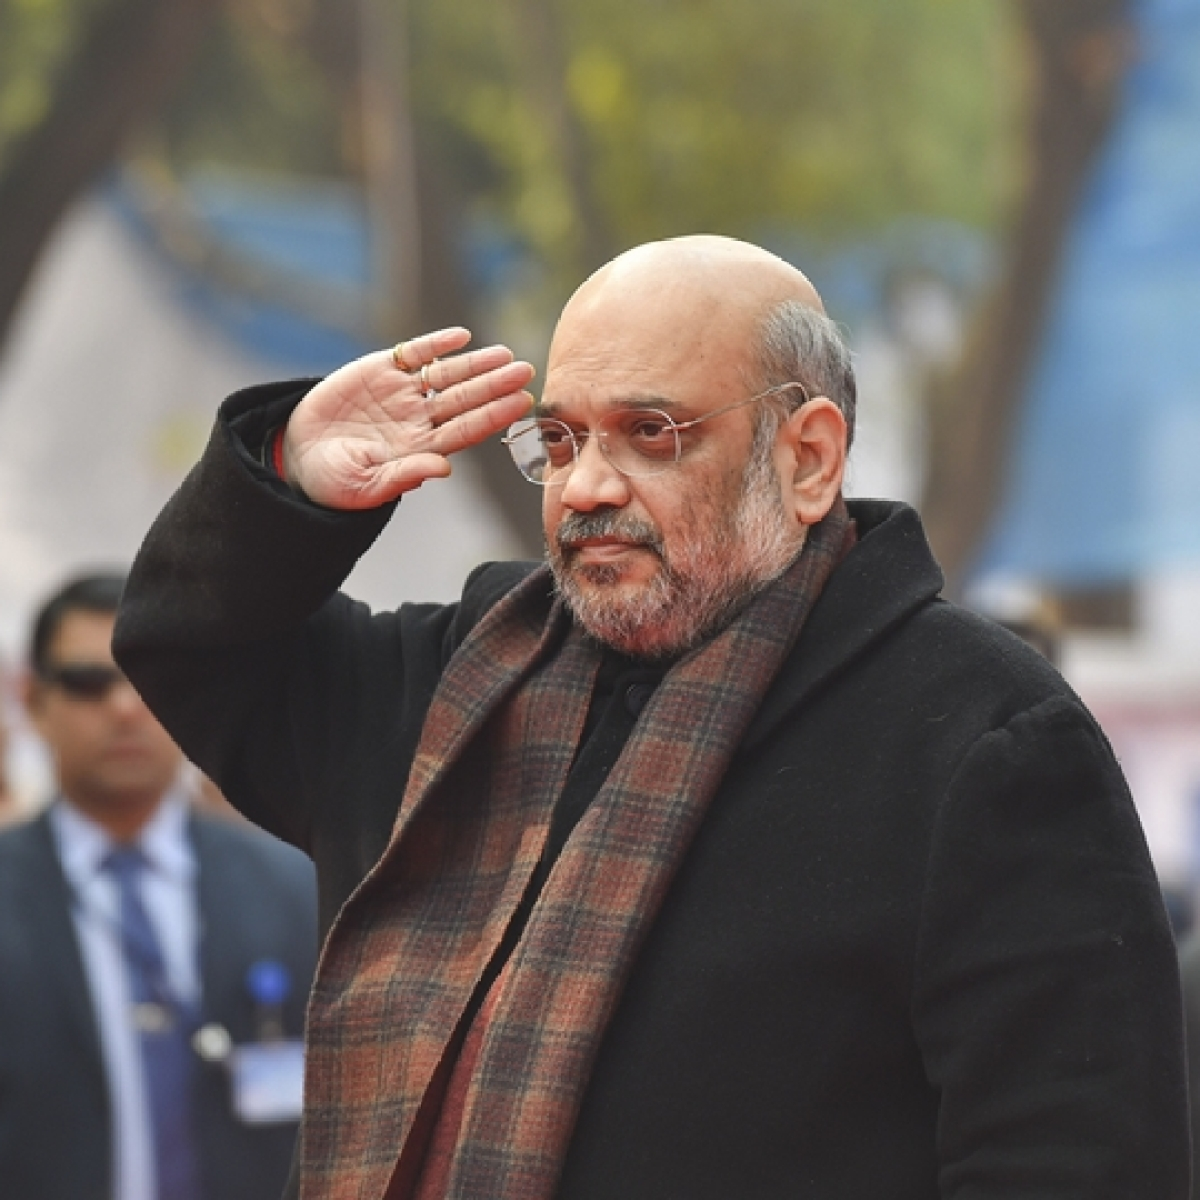 PM Modi govt determined to take care of families of central security forces personnel: Amit Shah